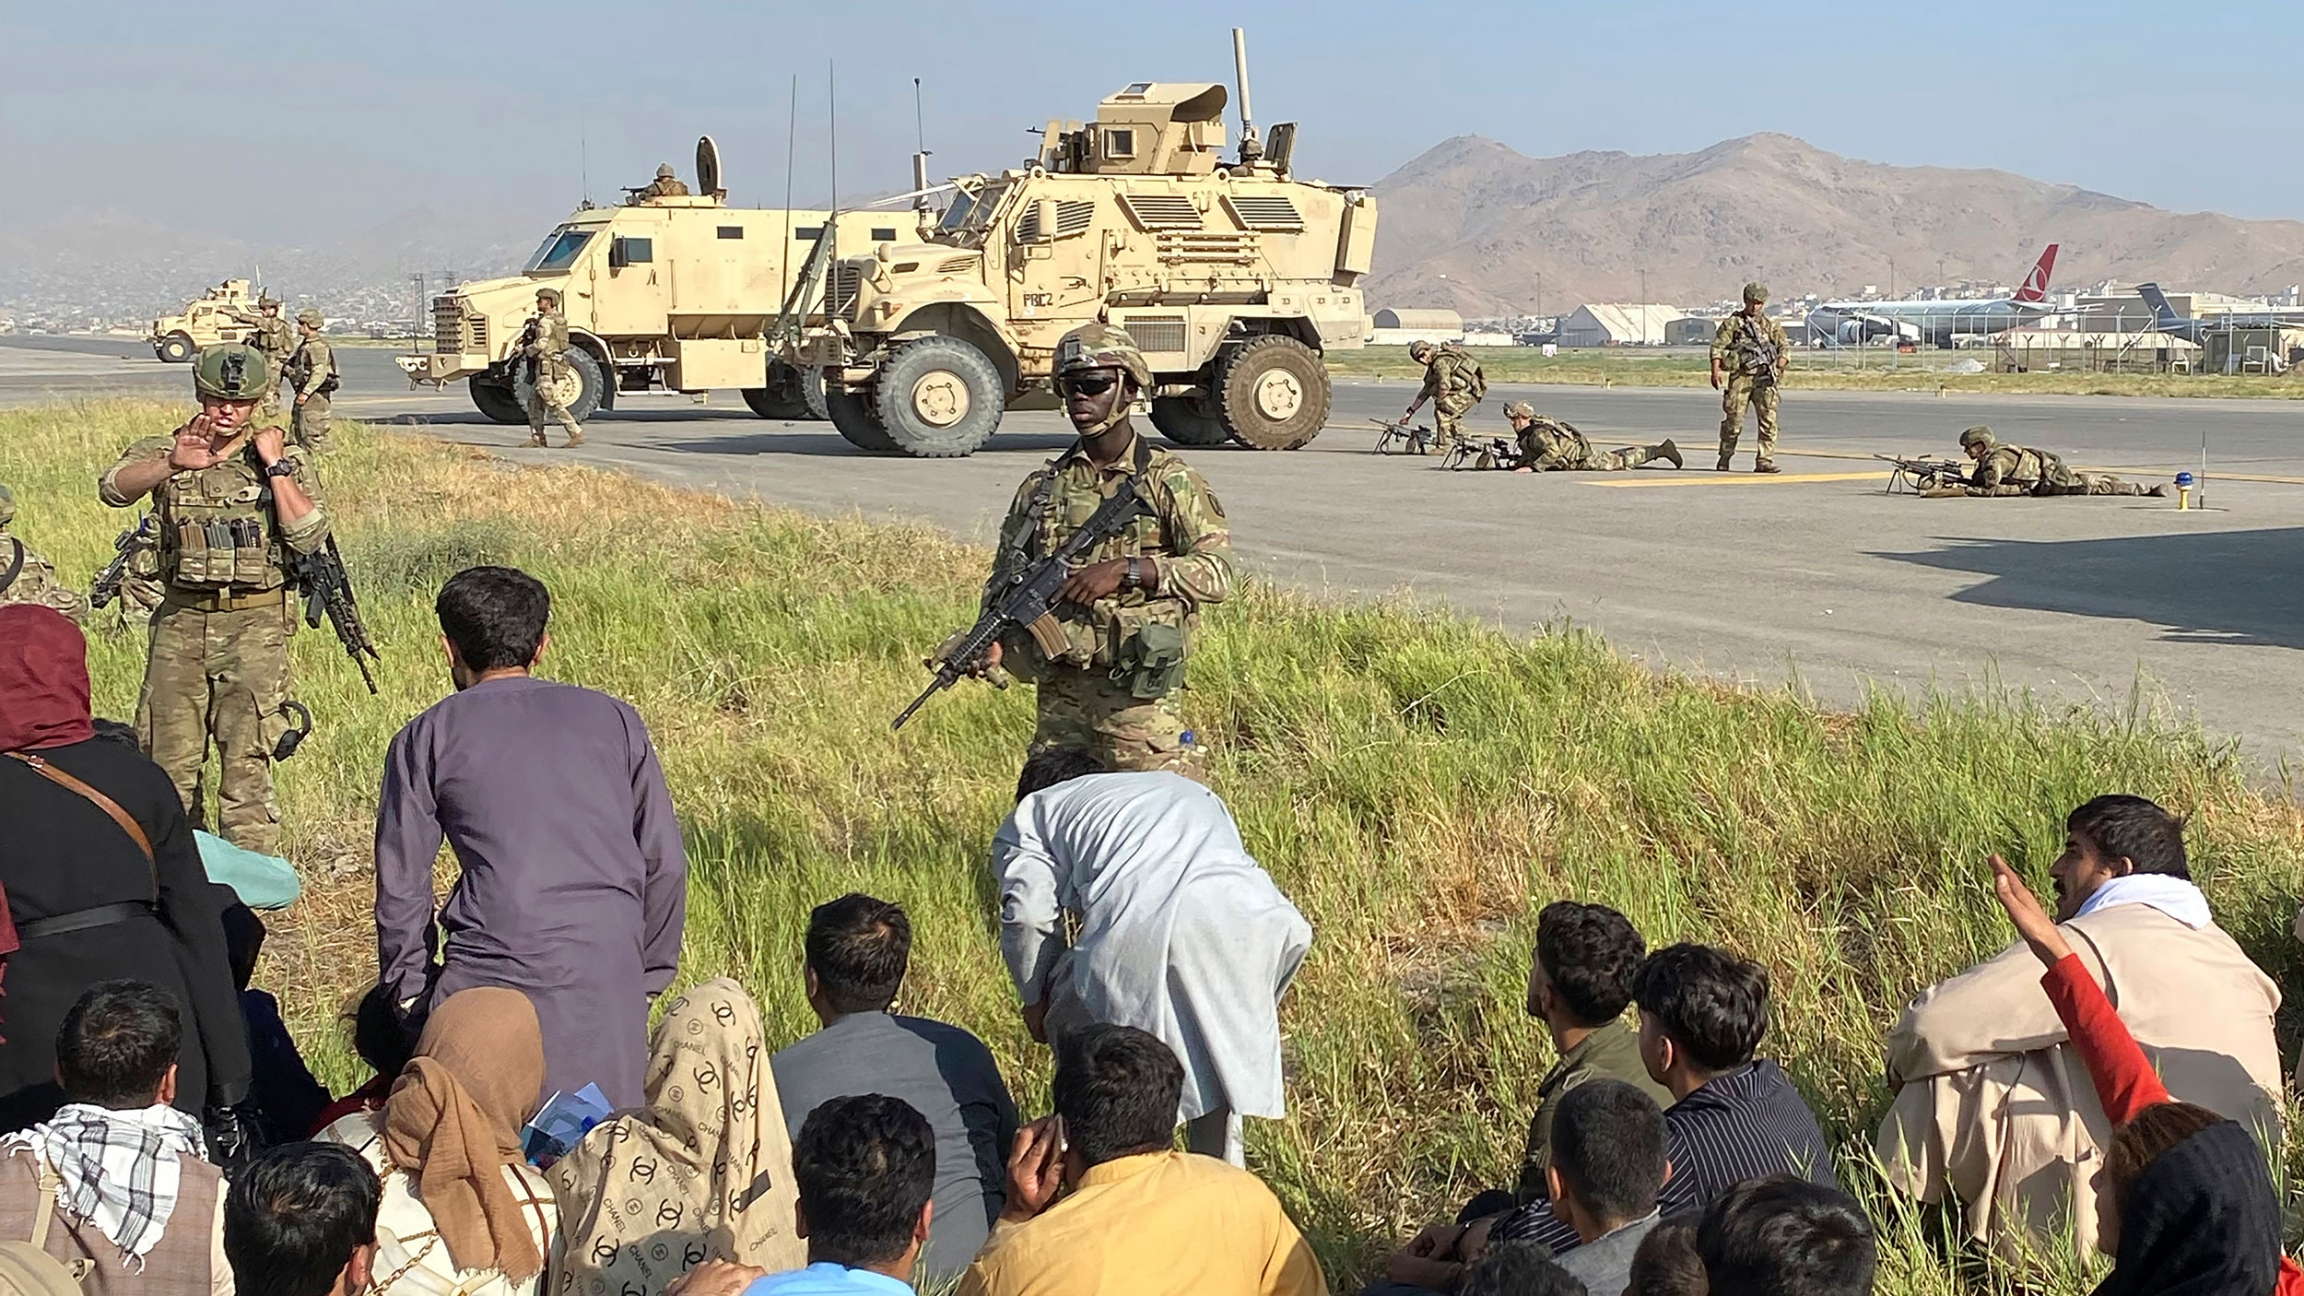 Several US military personnel are show standing guard next to the runways of the Kabul airport with two large military vehicles in the distance.